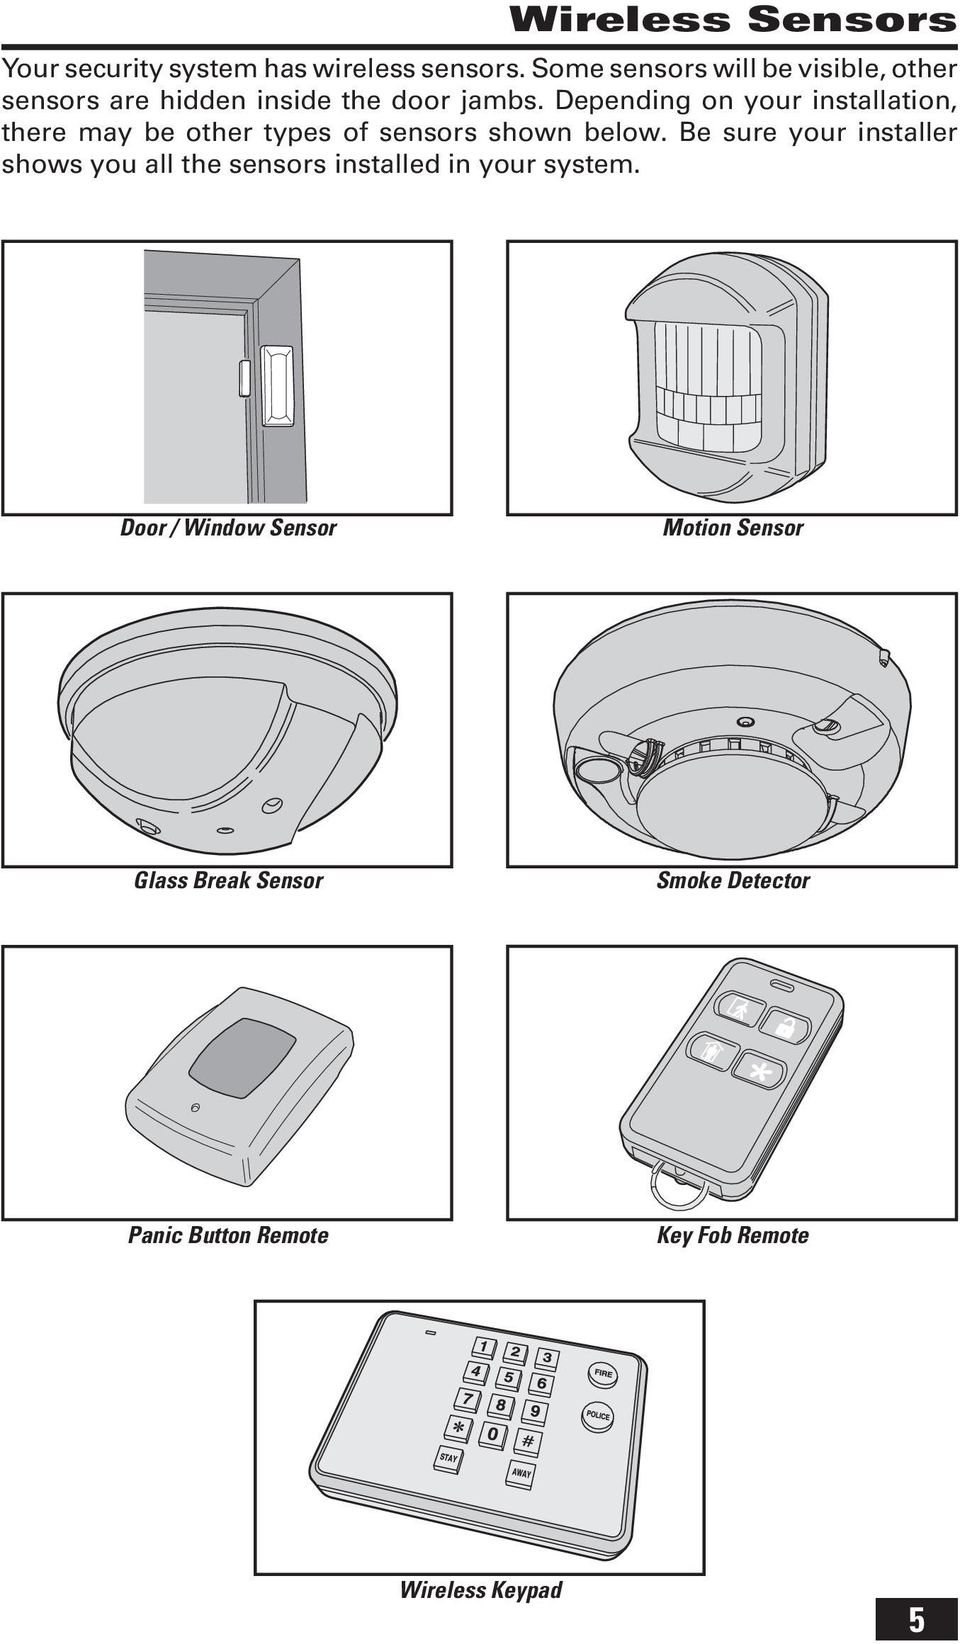 Depending on your installation, there may be other types of sensors shown below.